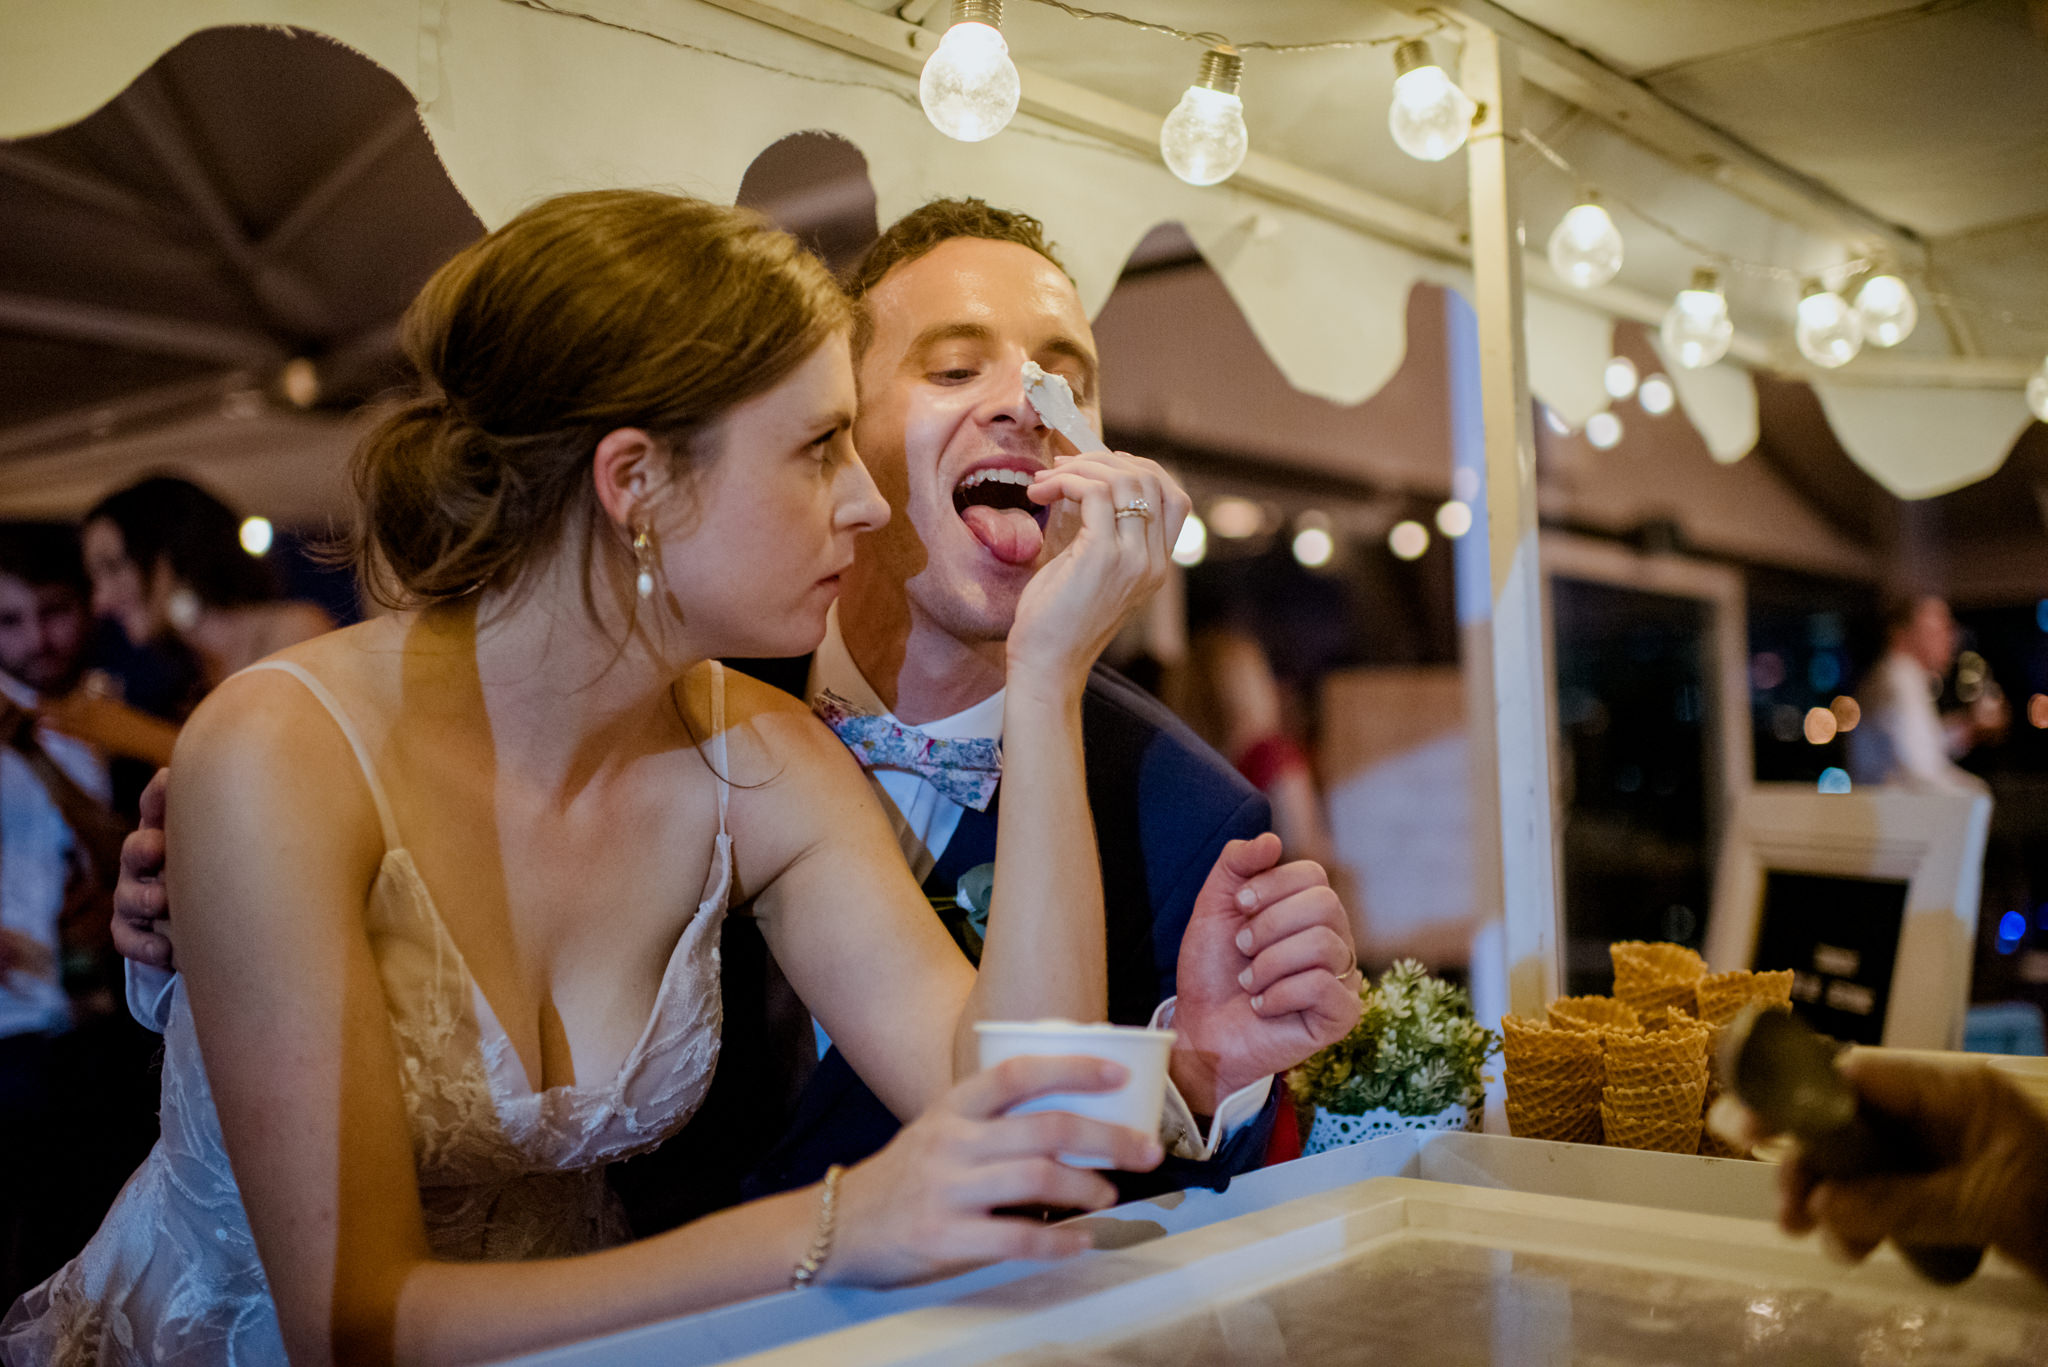 Bride playfully smearing ice cream on groom's nose